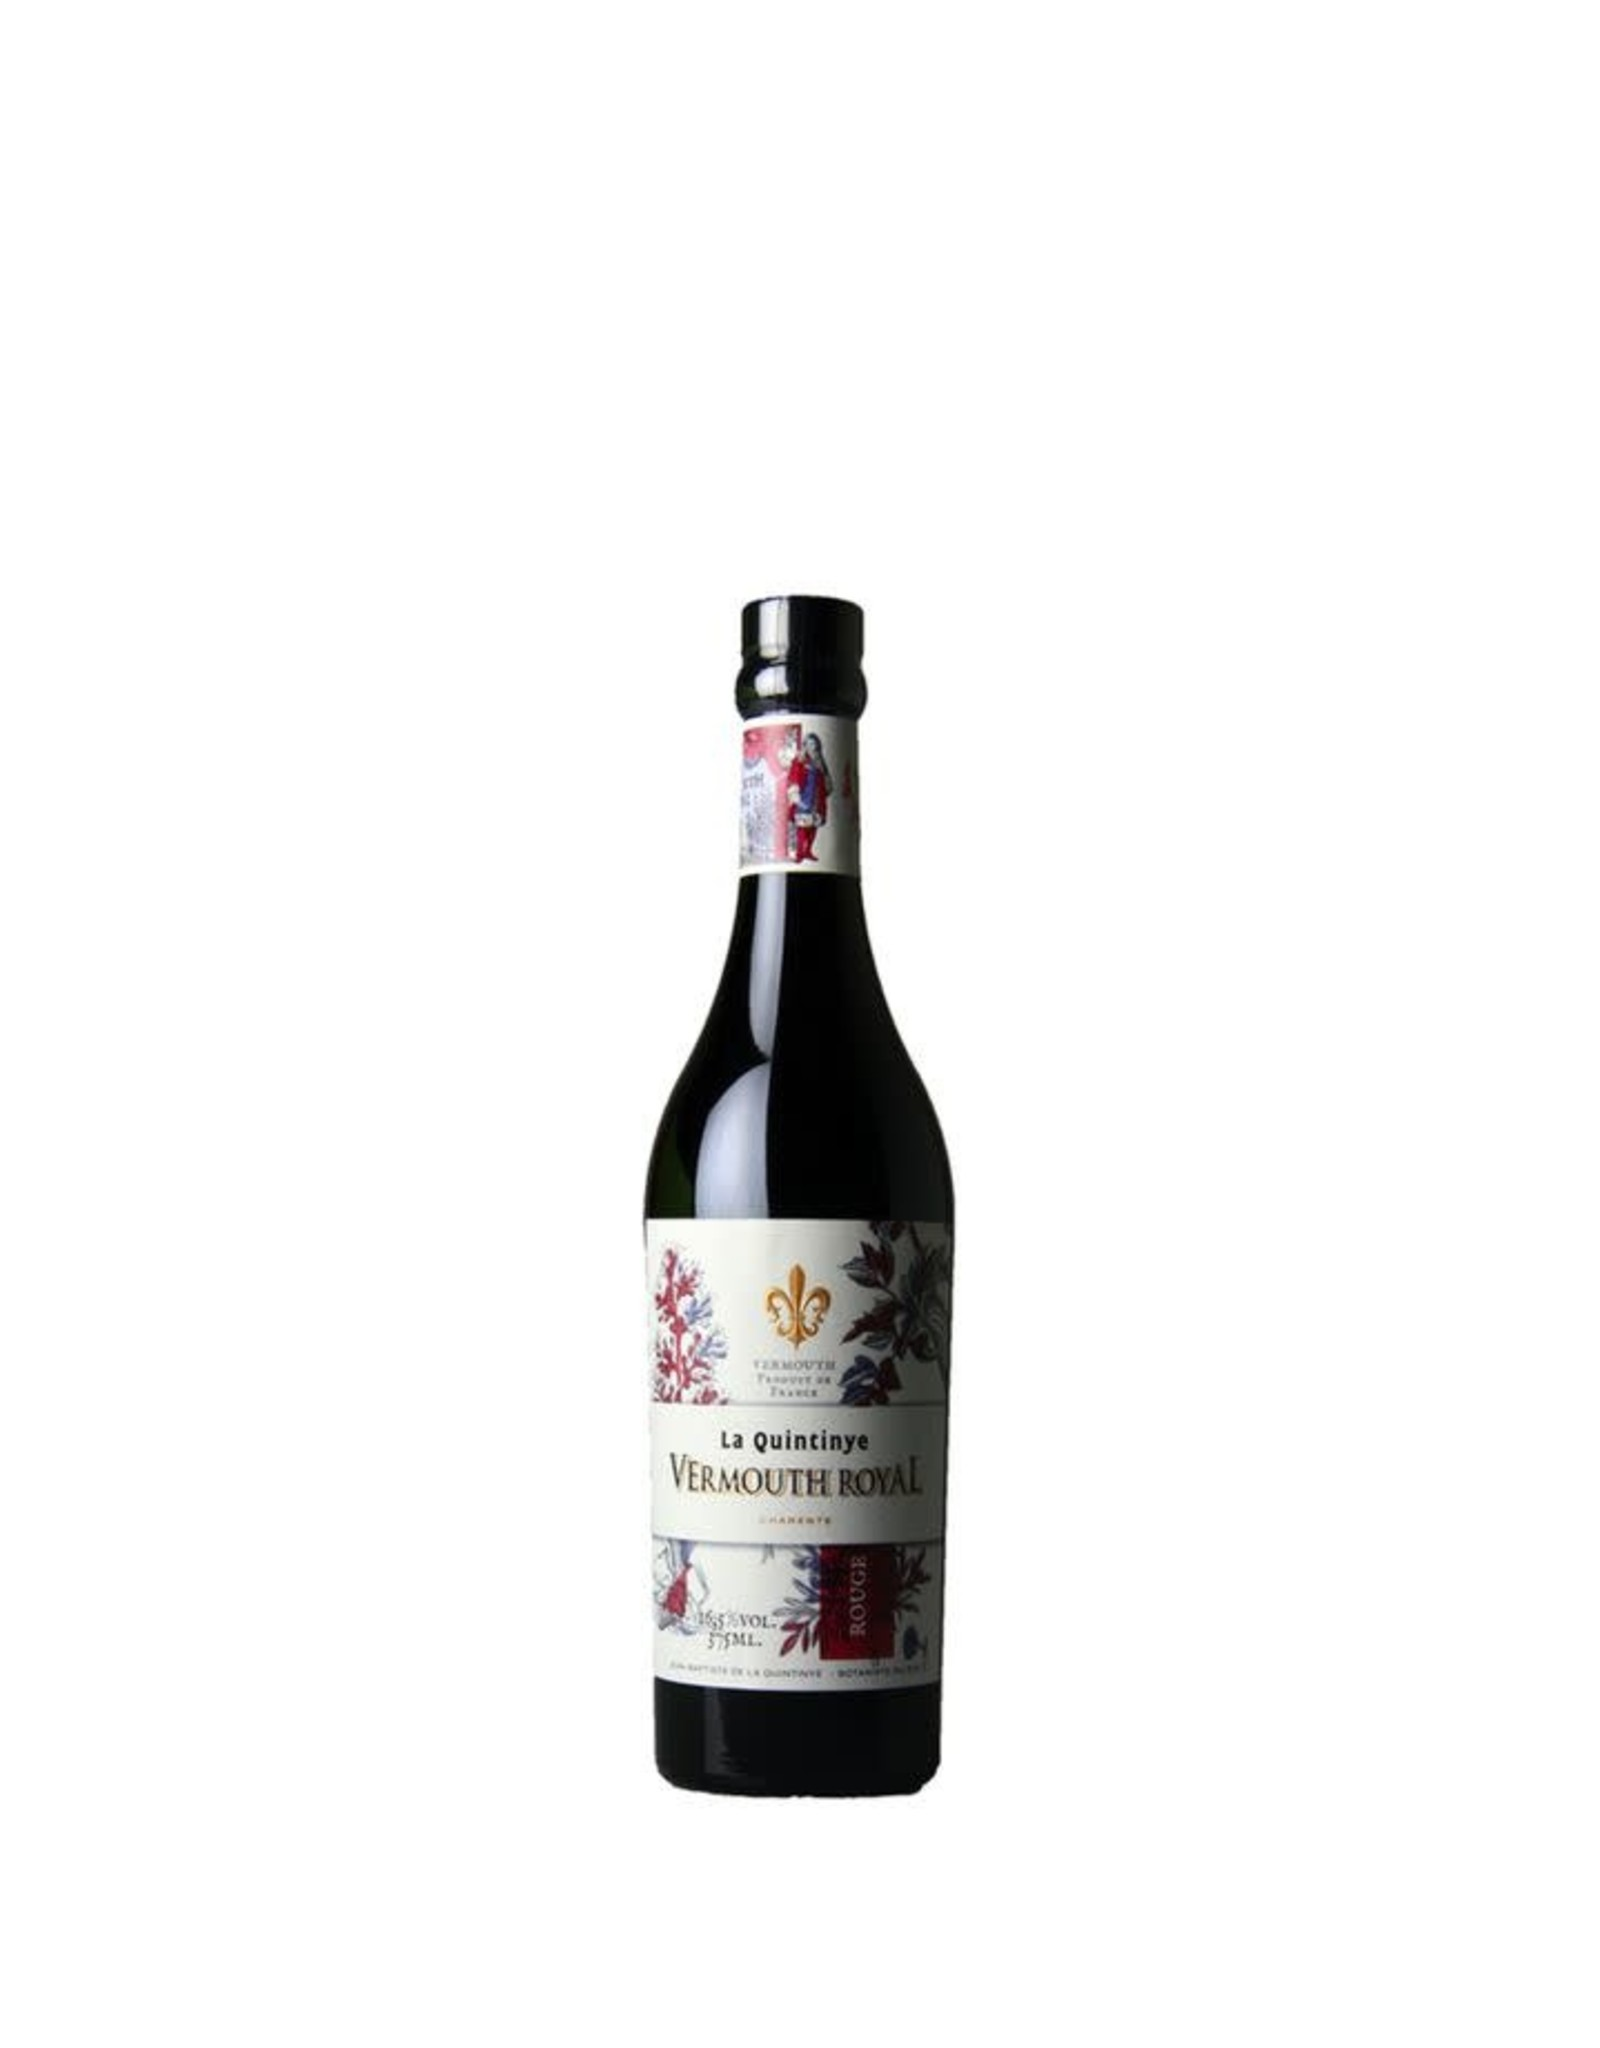 France La Quintinye Vermouth Royal Rouge 375ml